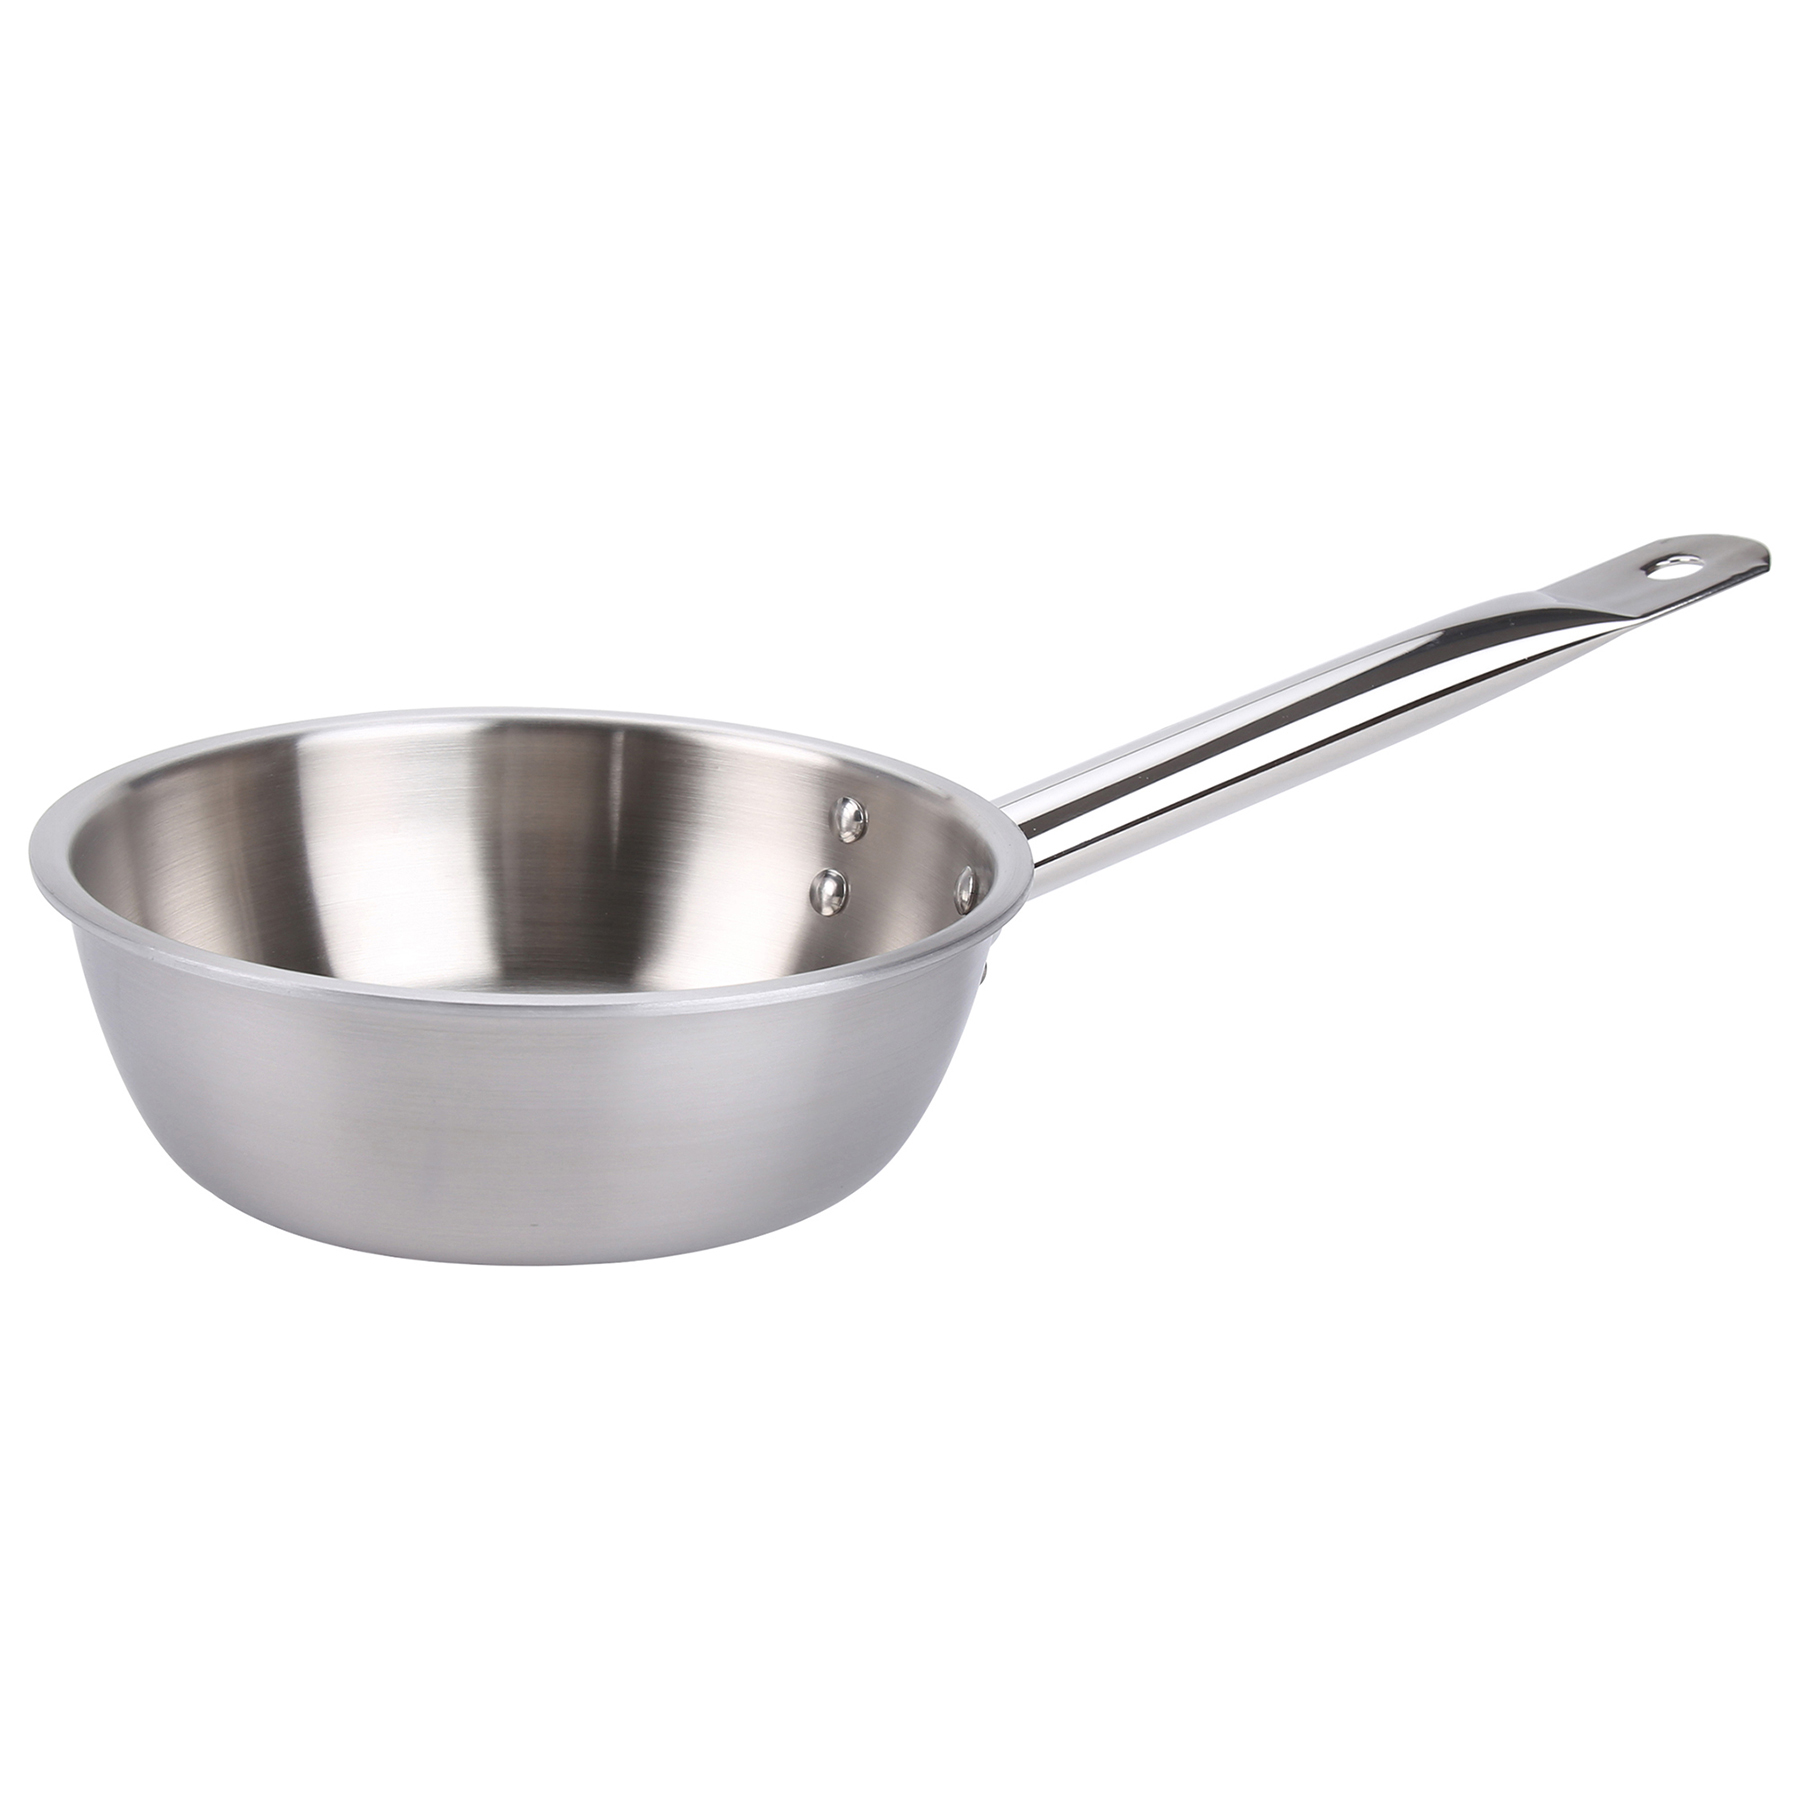 Avon Stainless Steel Saucier/Chef Pan Tri Ply Induction Compatible